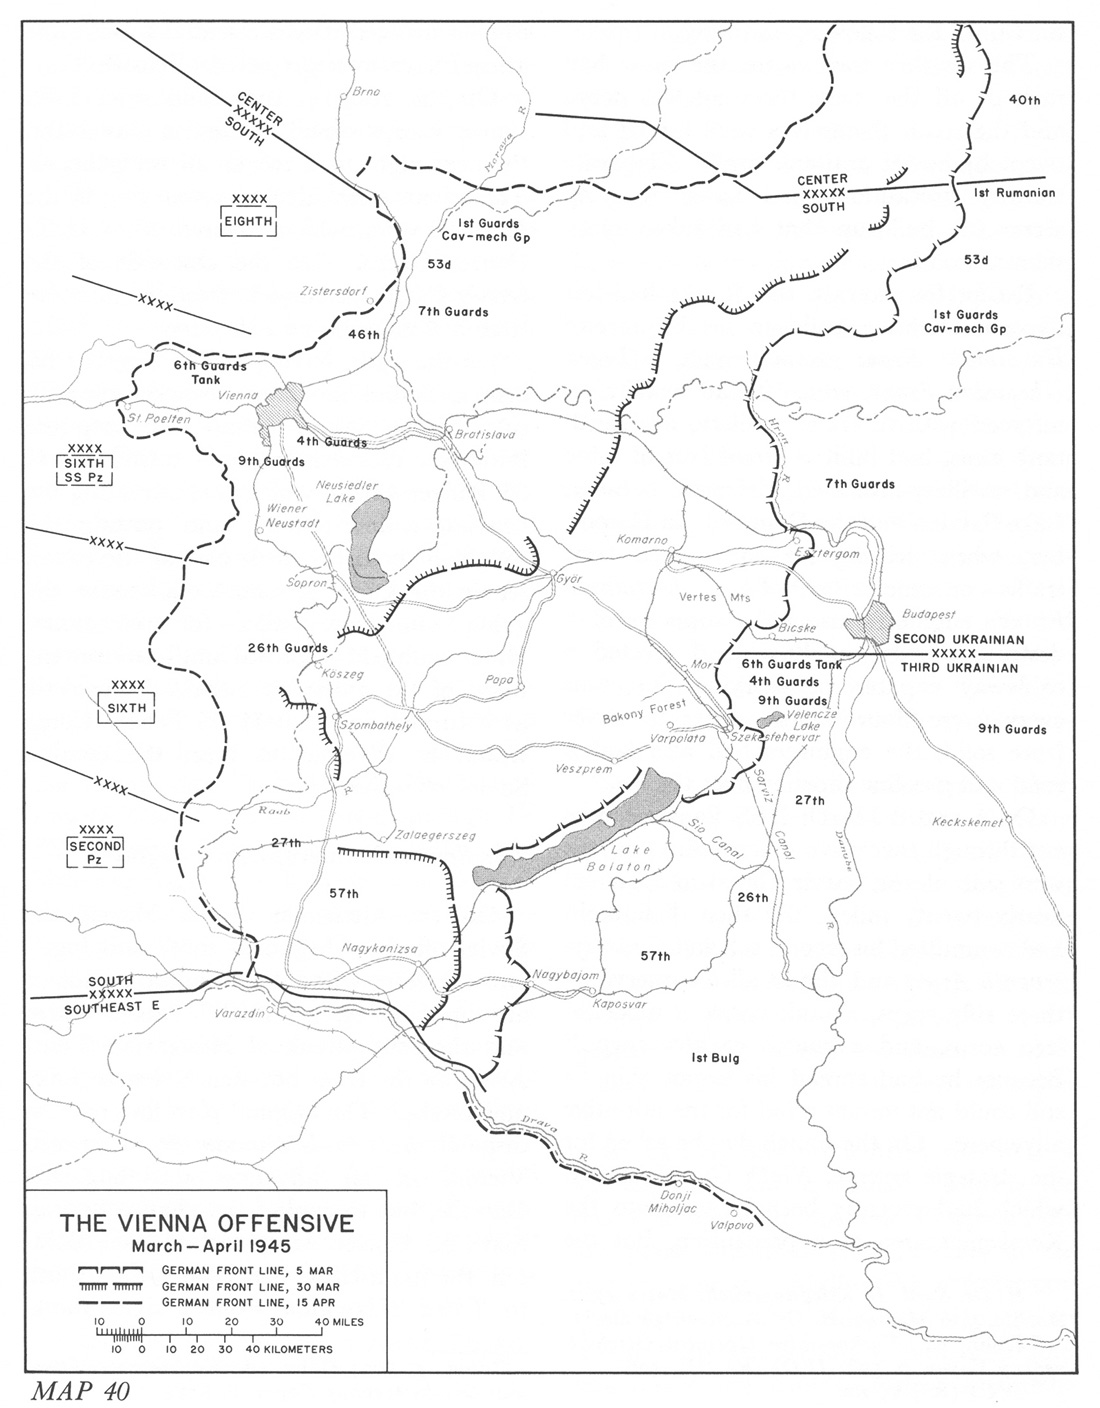 hyperwar stalingrad to berlin the german defeat in the east Chef Resume Outline map 40 the objective ostensibly was to put a more substantial buffer between the russians and the nagykanizsa oil fields this required a main thrust to